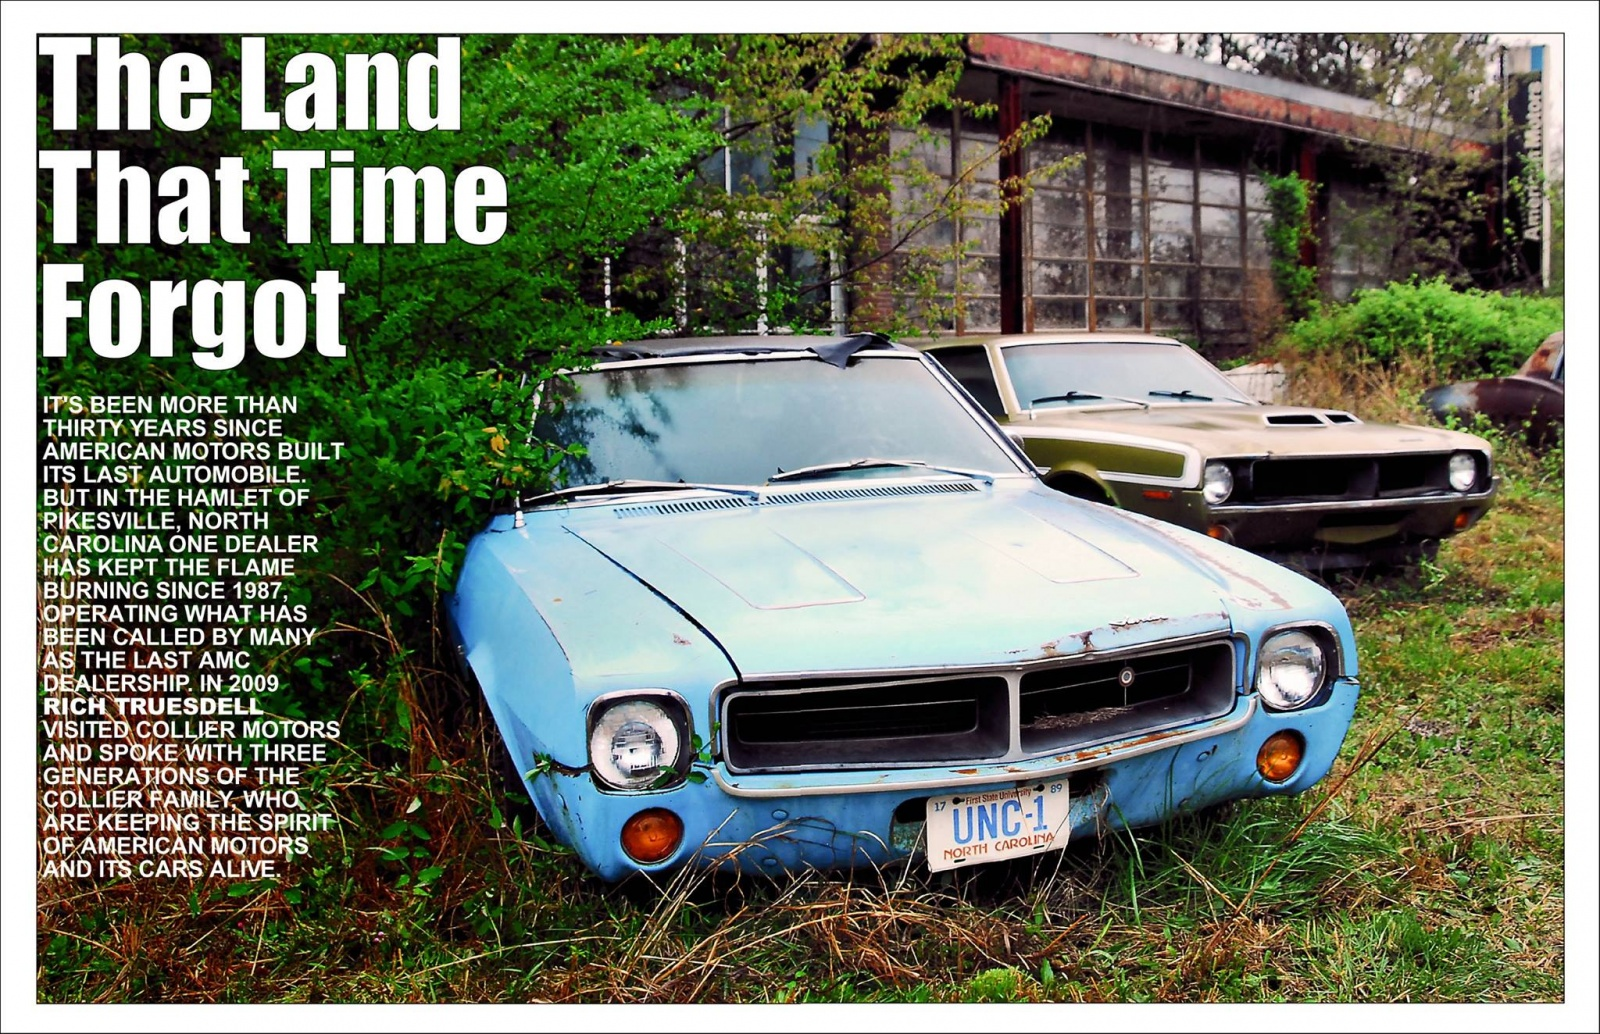 American Pickers Pikeville Nc former amc dealership full of cars